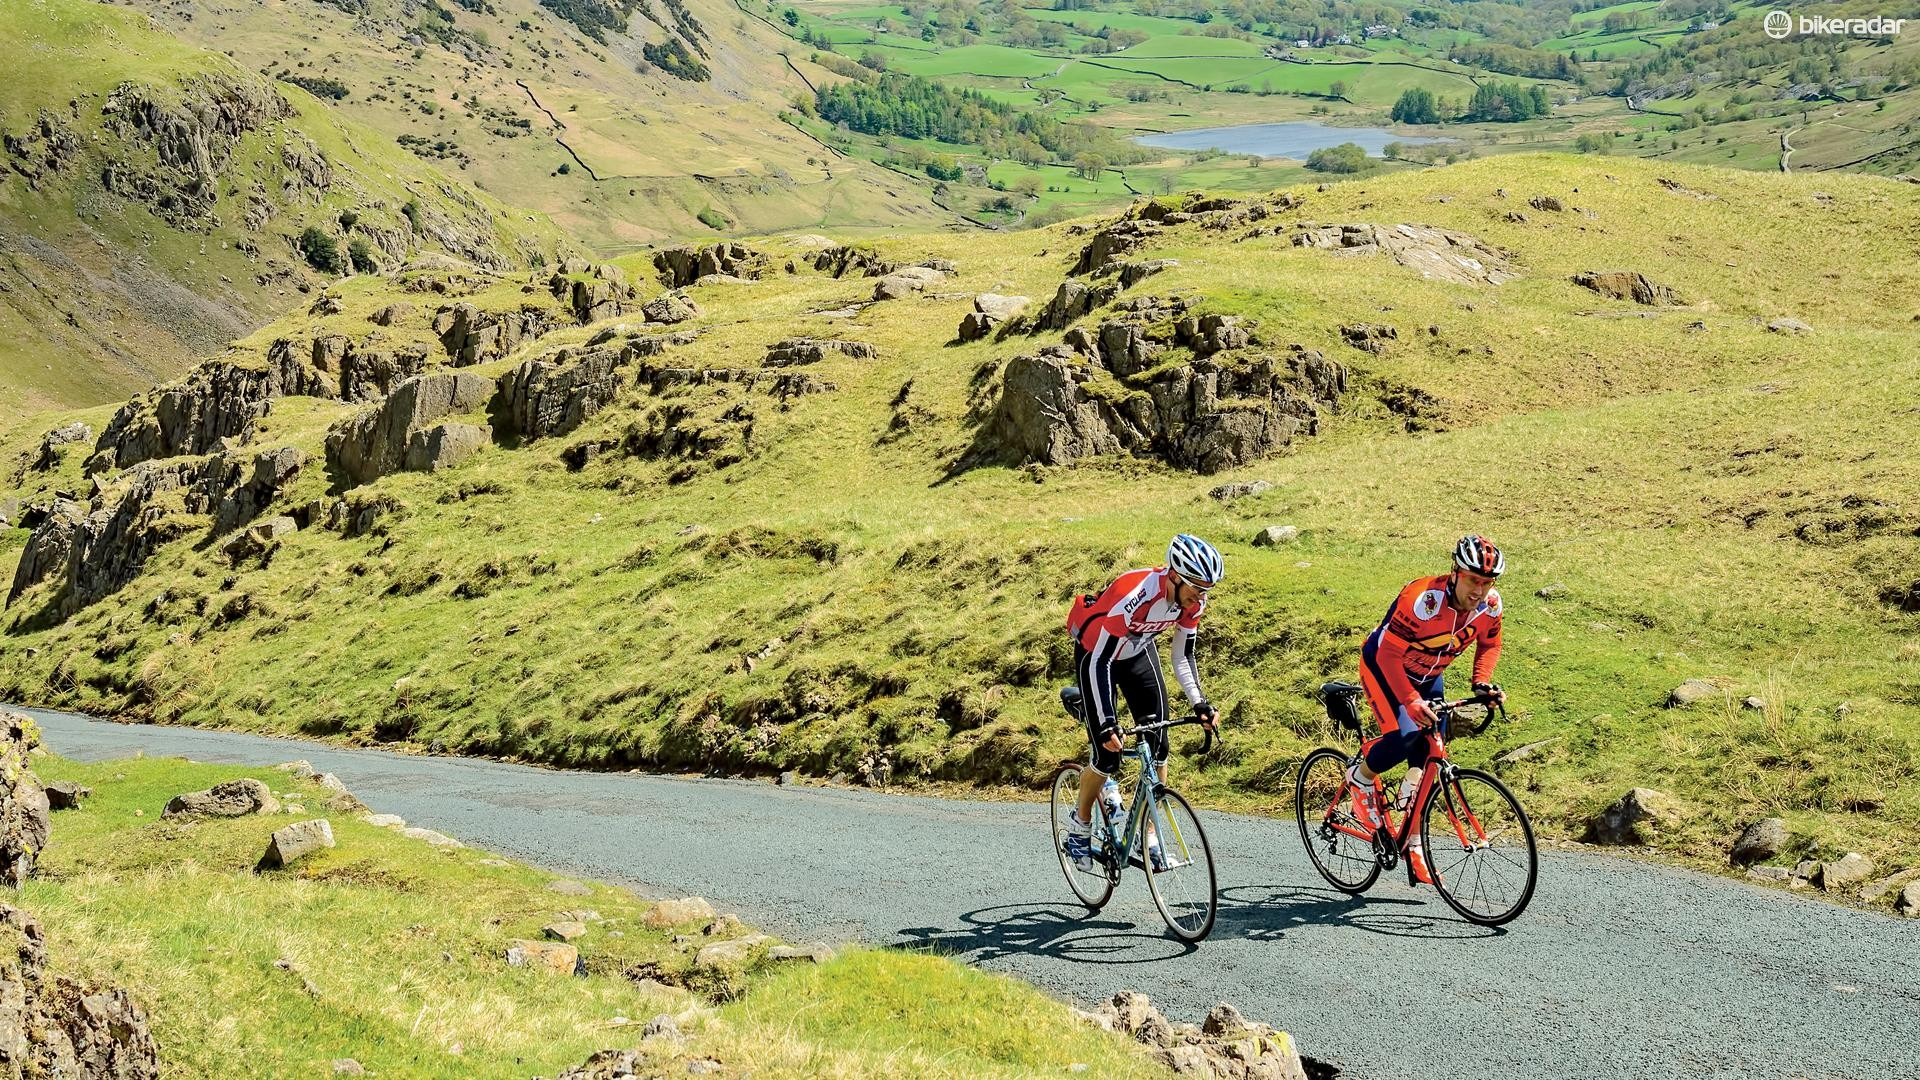 Round off your ride with some interval sessions